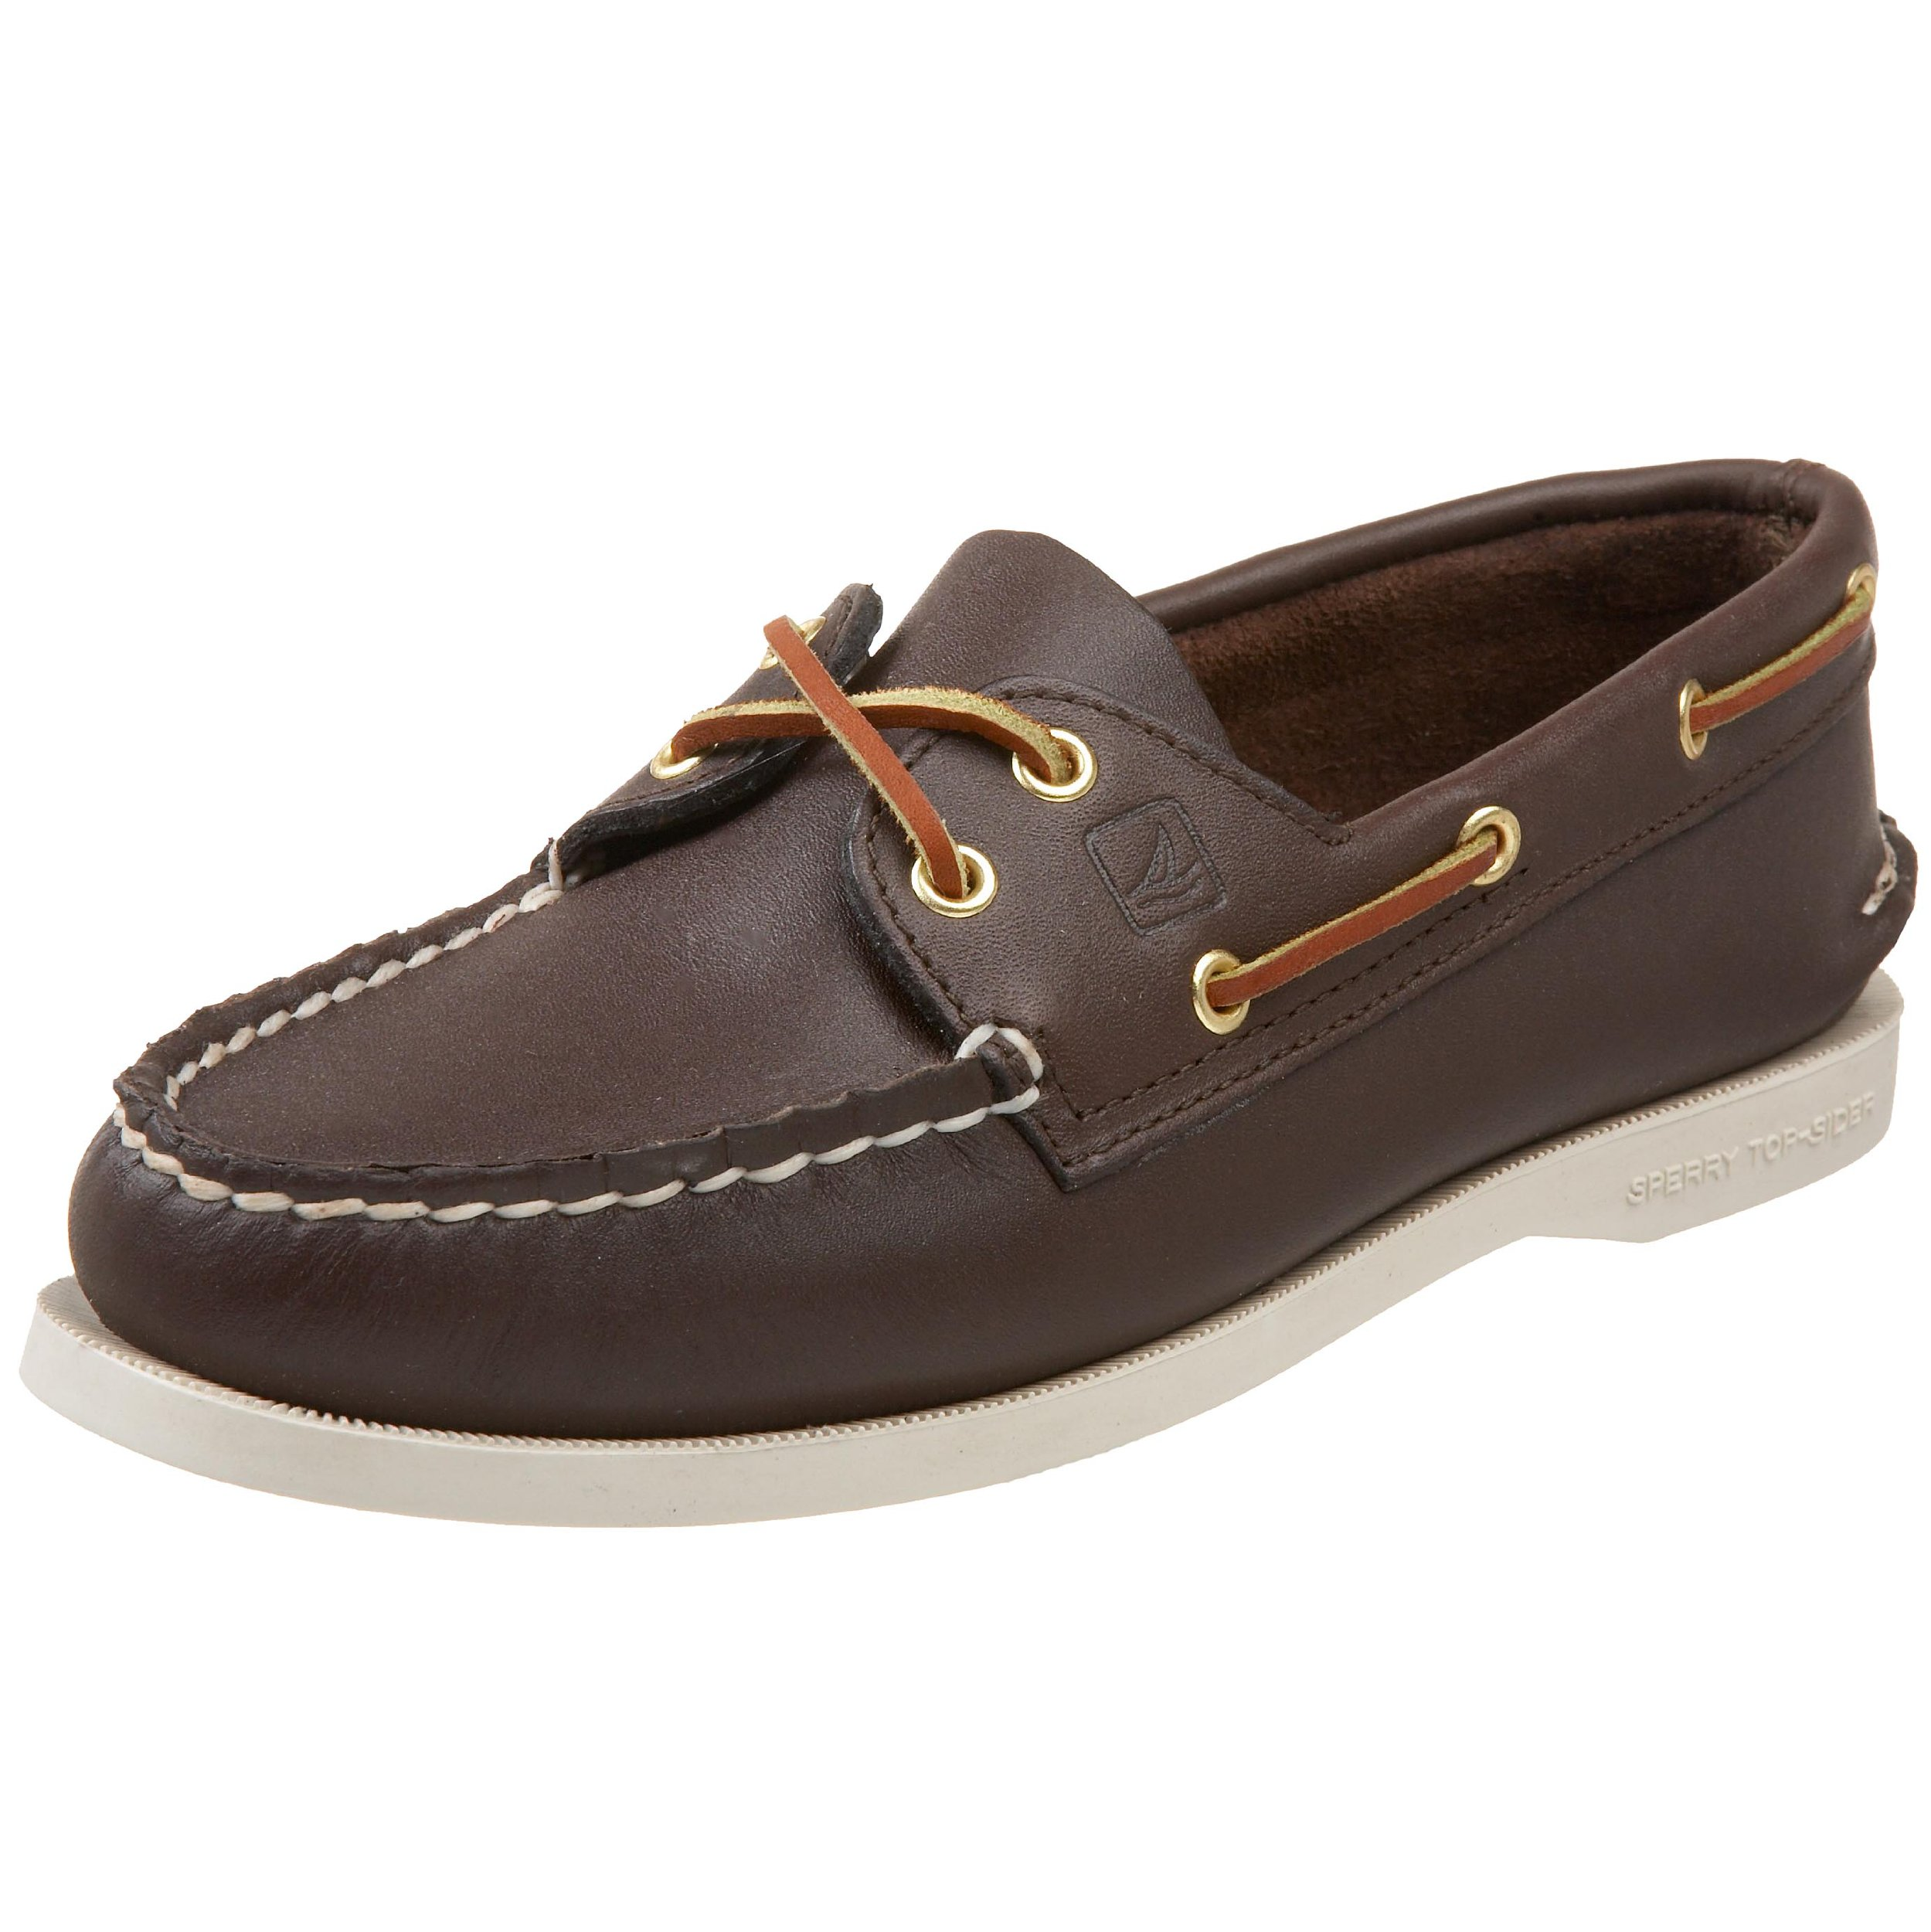 Sperry Womens A/O 2-Eye Boat Shoe, Classic Brown, 7.5 Wide by SPERRY